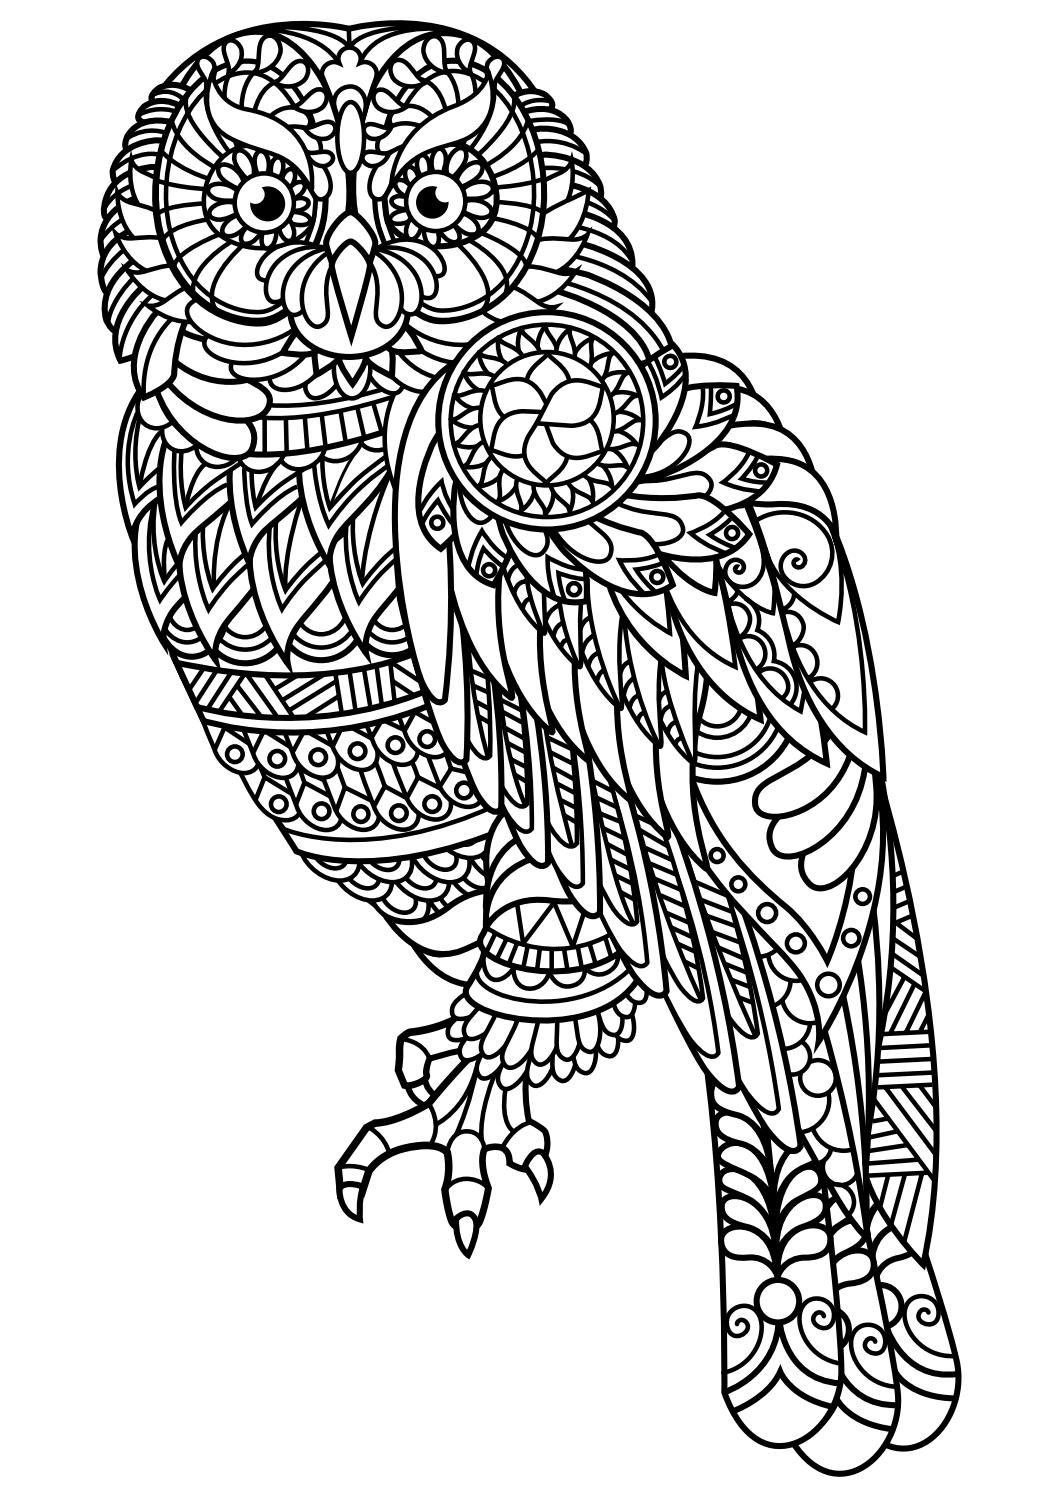 Picture to color of animals - Animal Coloring Pages Pdf